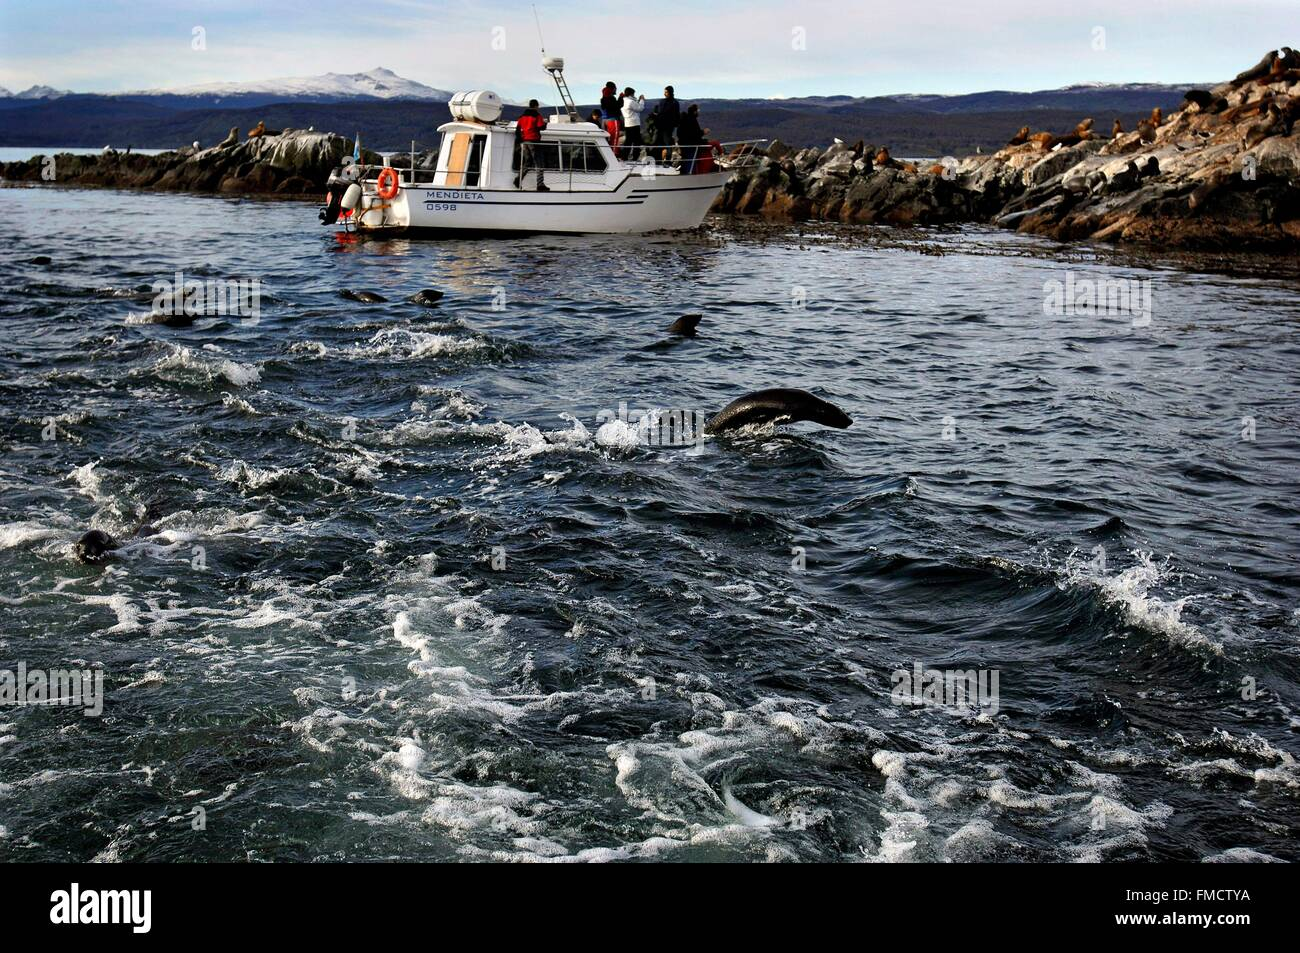 Argentina, Patagonia, Tierra del Fuego province, Ushuaia, a group of tourists observe South American sea lions (Otaria Stock Photo